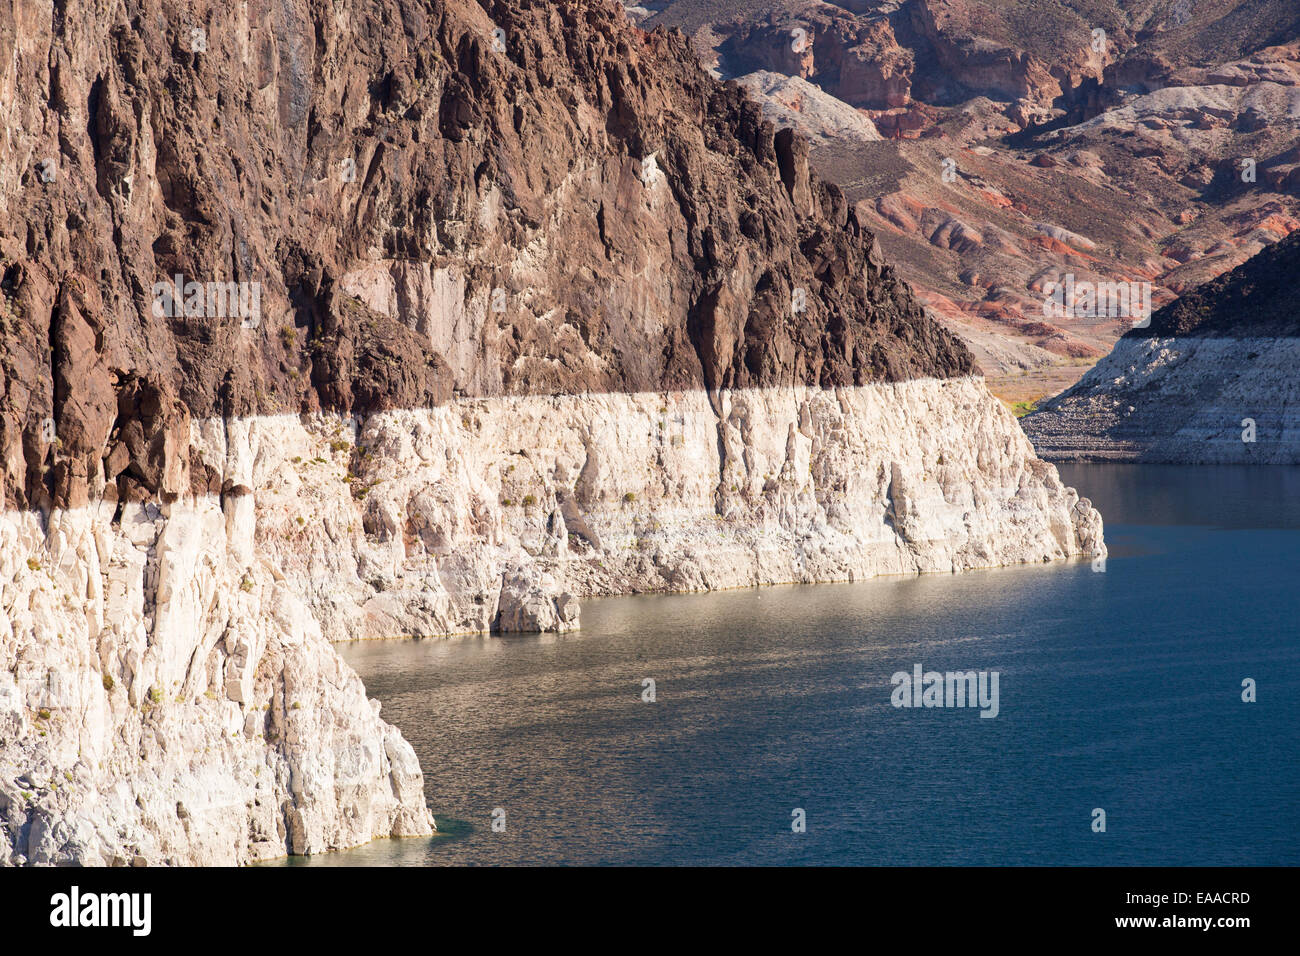 Lake Mead, Nevada, USA. The lake is at a very low level due to the four year long drought, with the boundary of Stock Photo